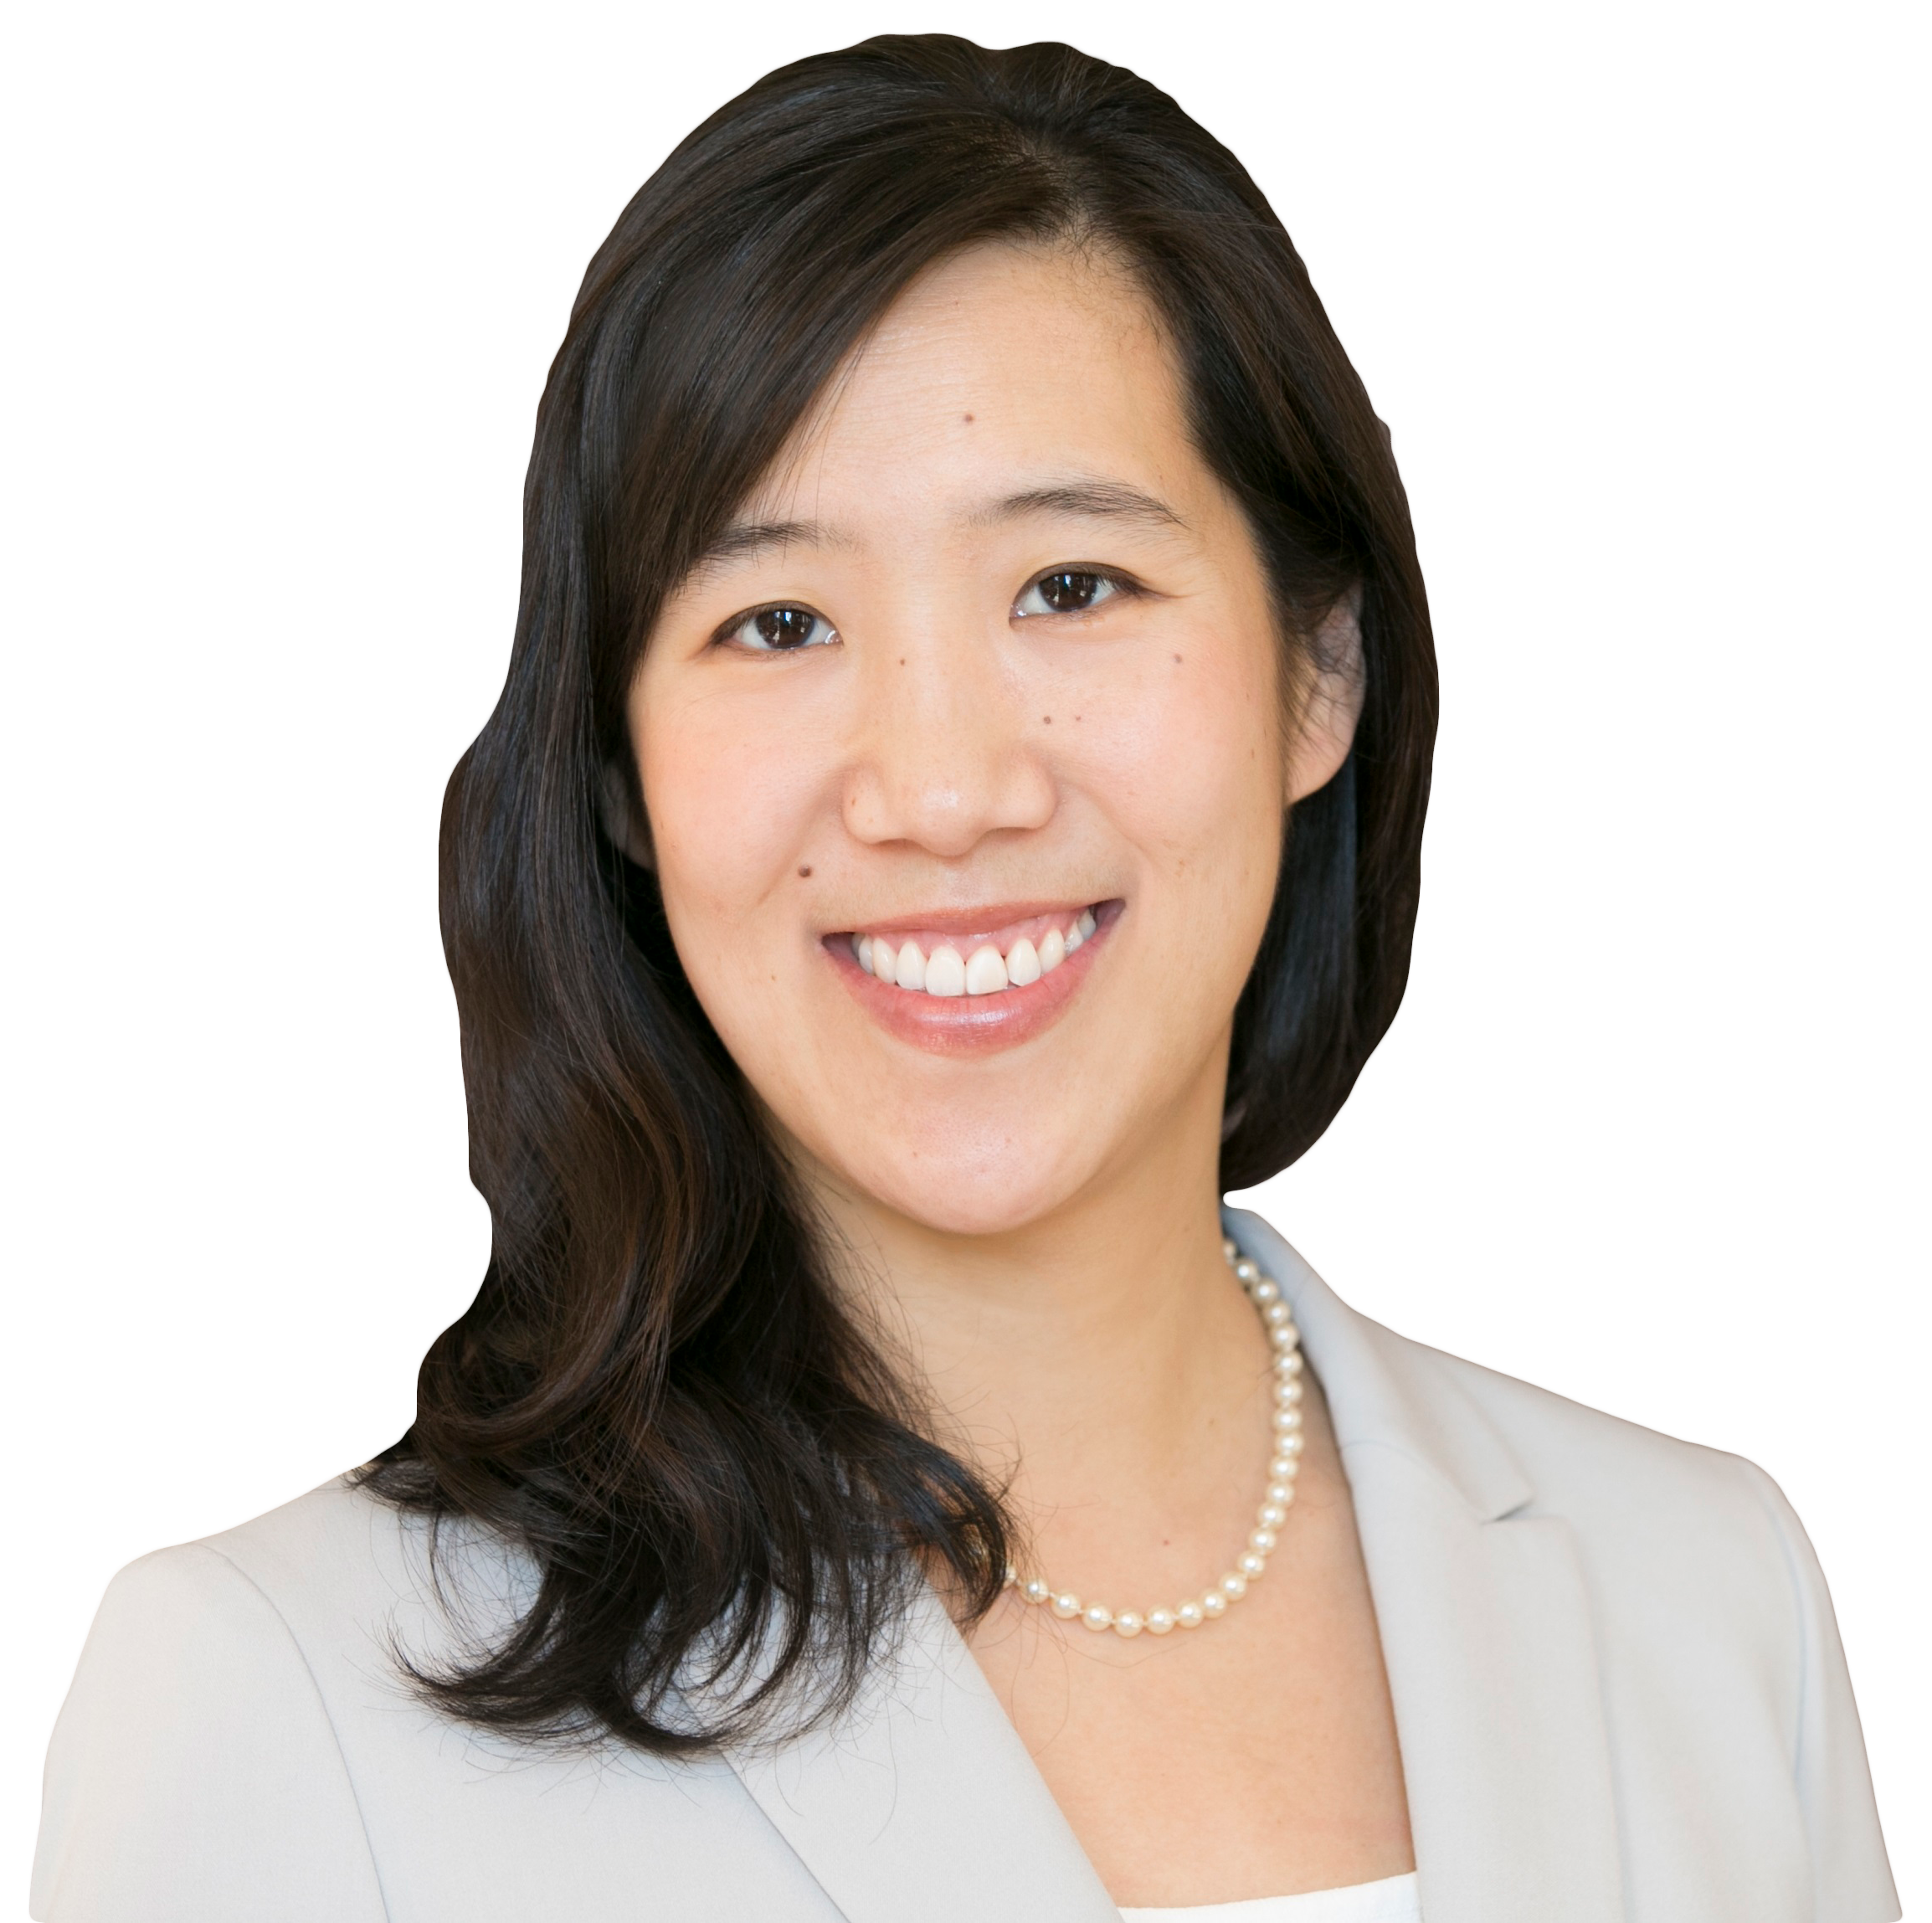 Harvard Business School professor Laura Huang wants to help you find your competitive edge.